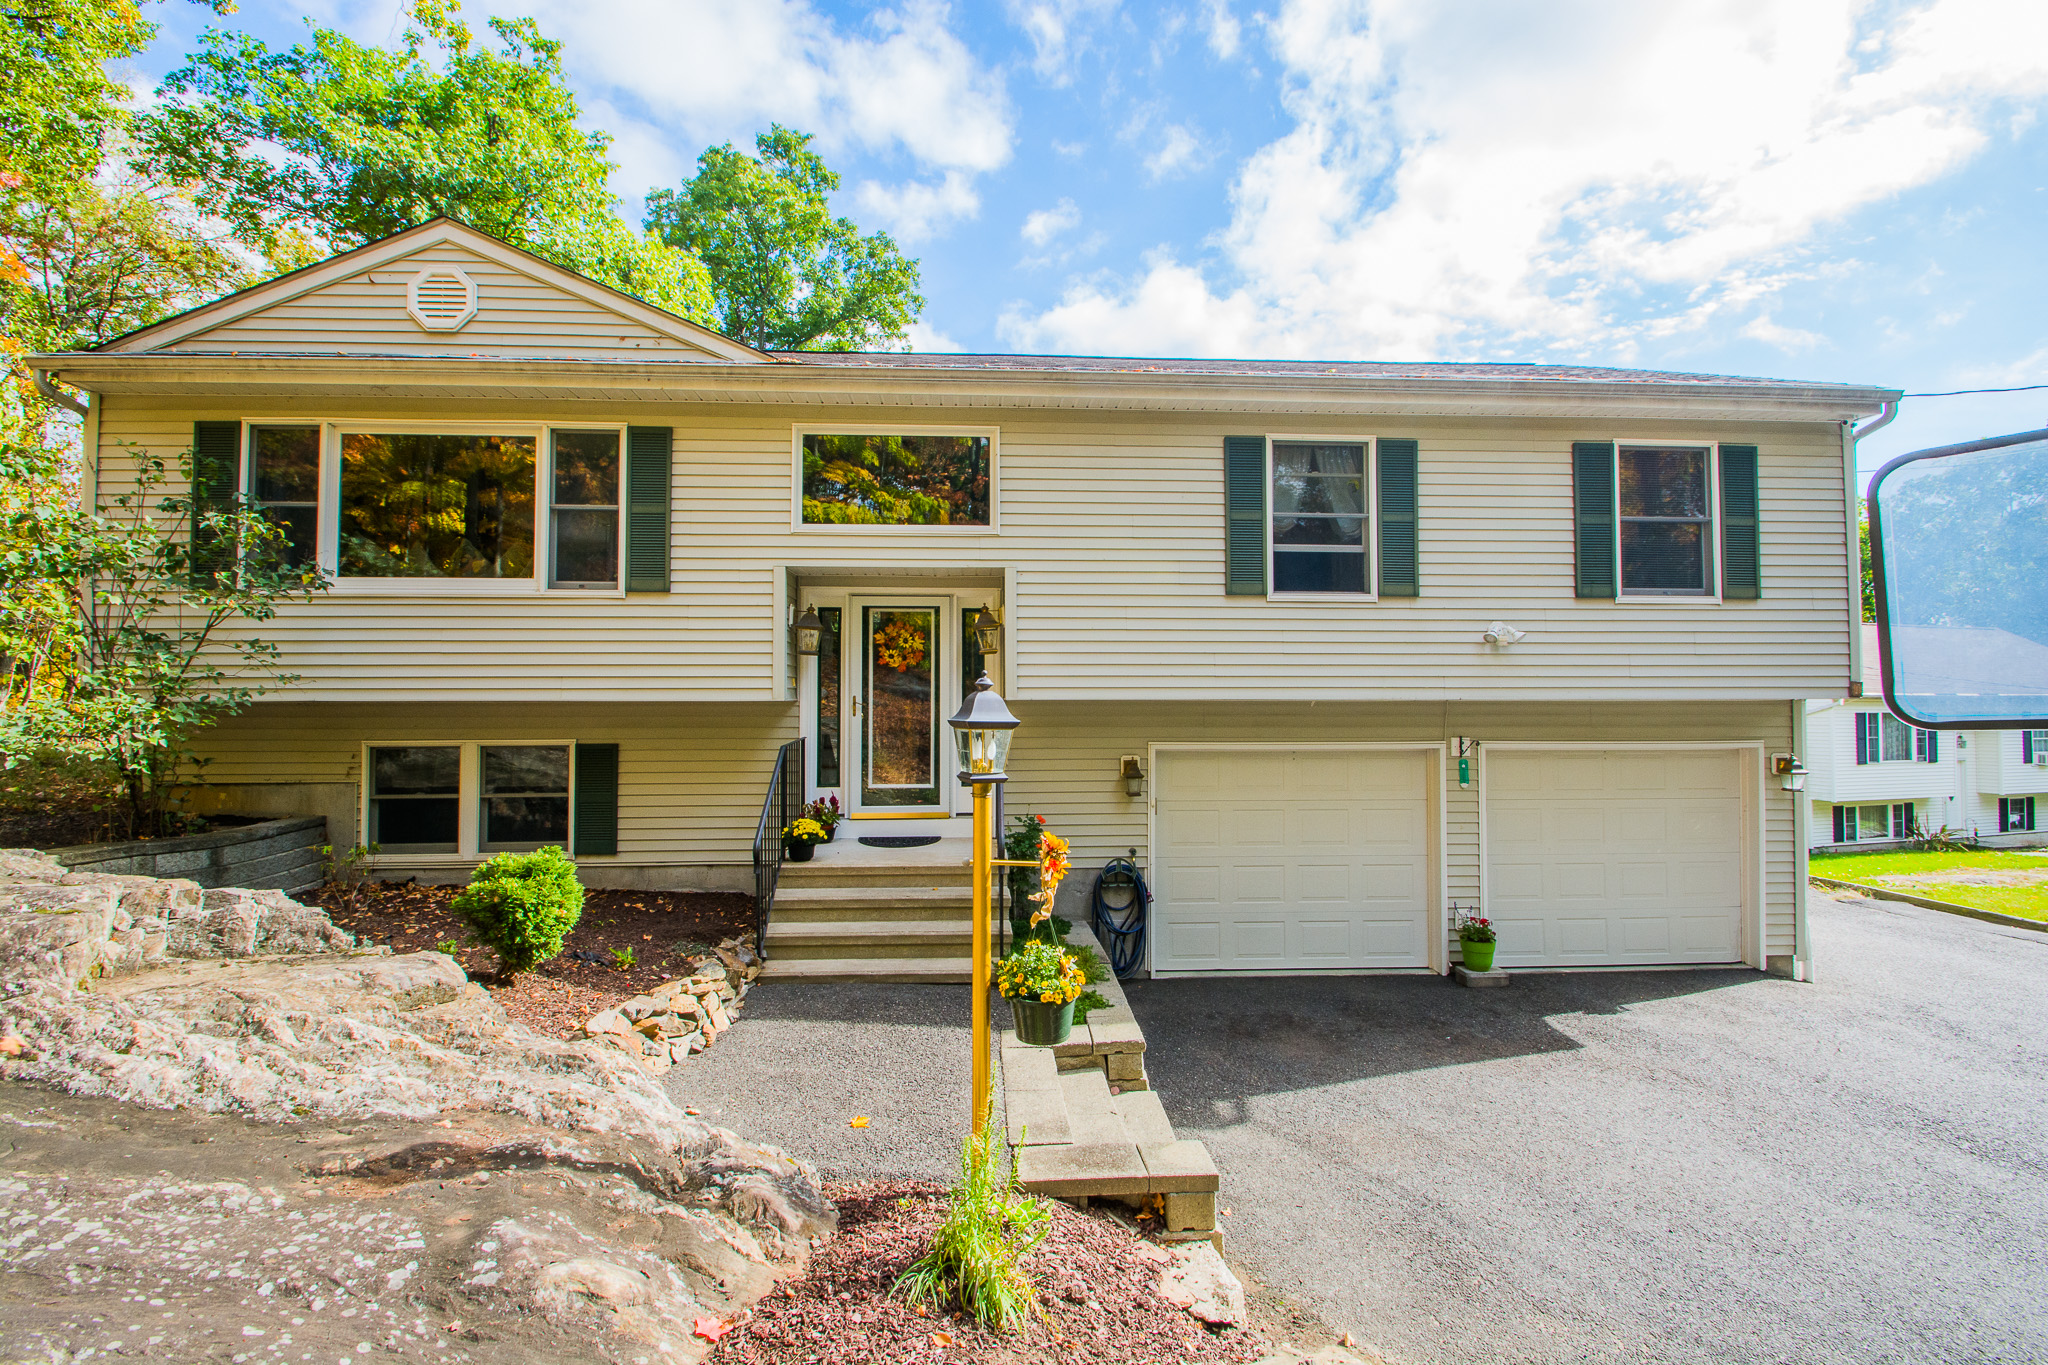 Single Family Home for Sale at Bright Open Floor Plan 41 Linda Lane New Fairfield, Connecticut, 06812 United States